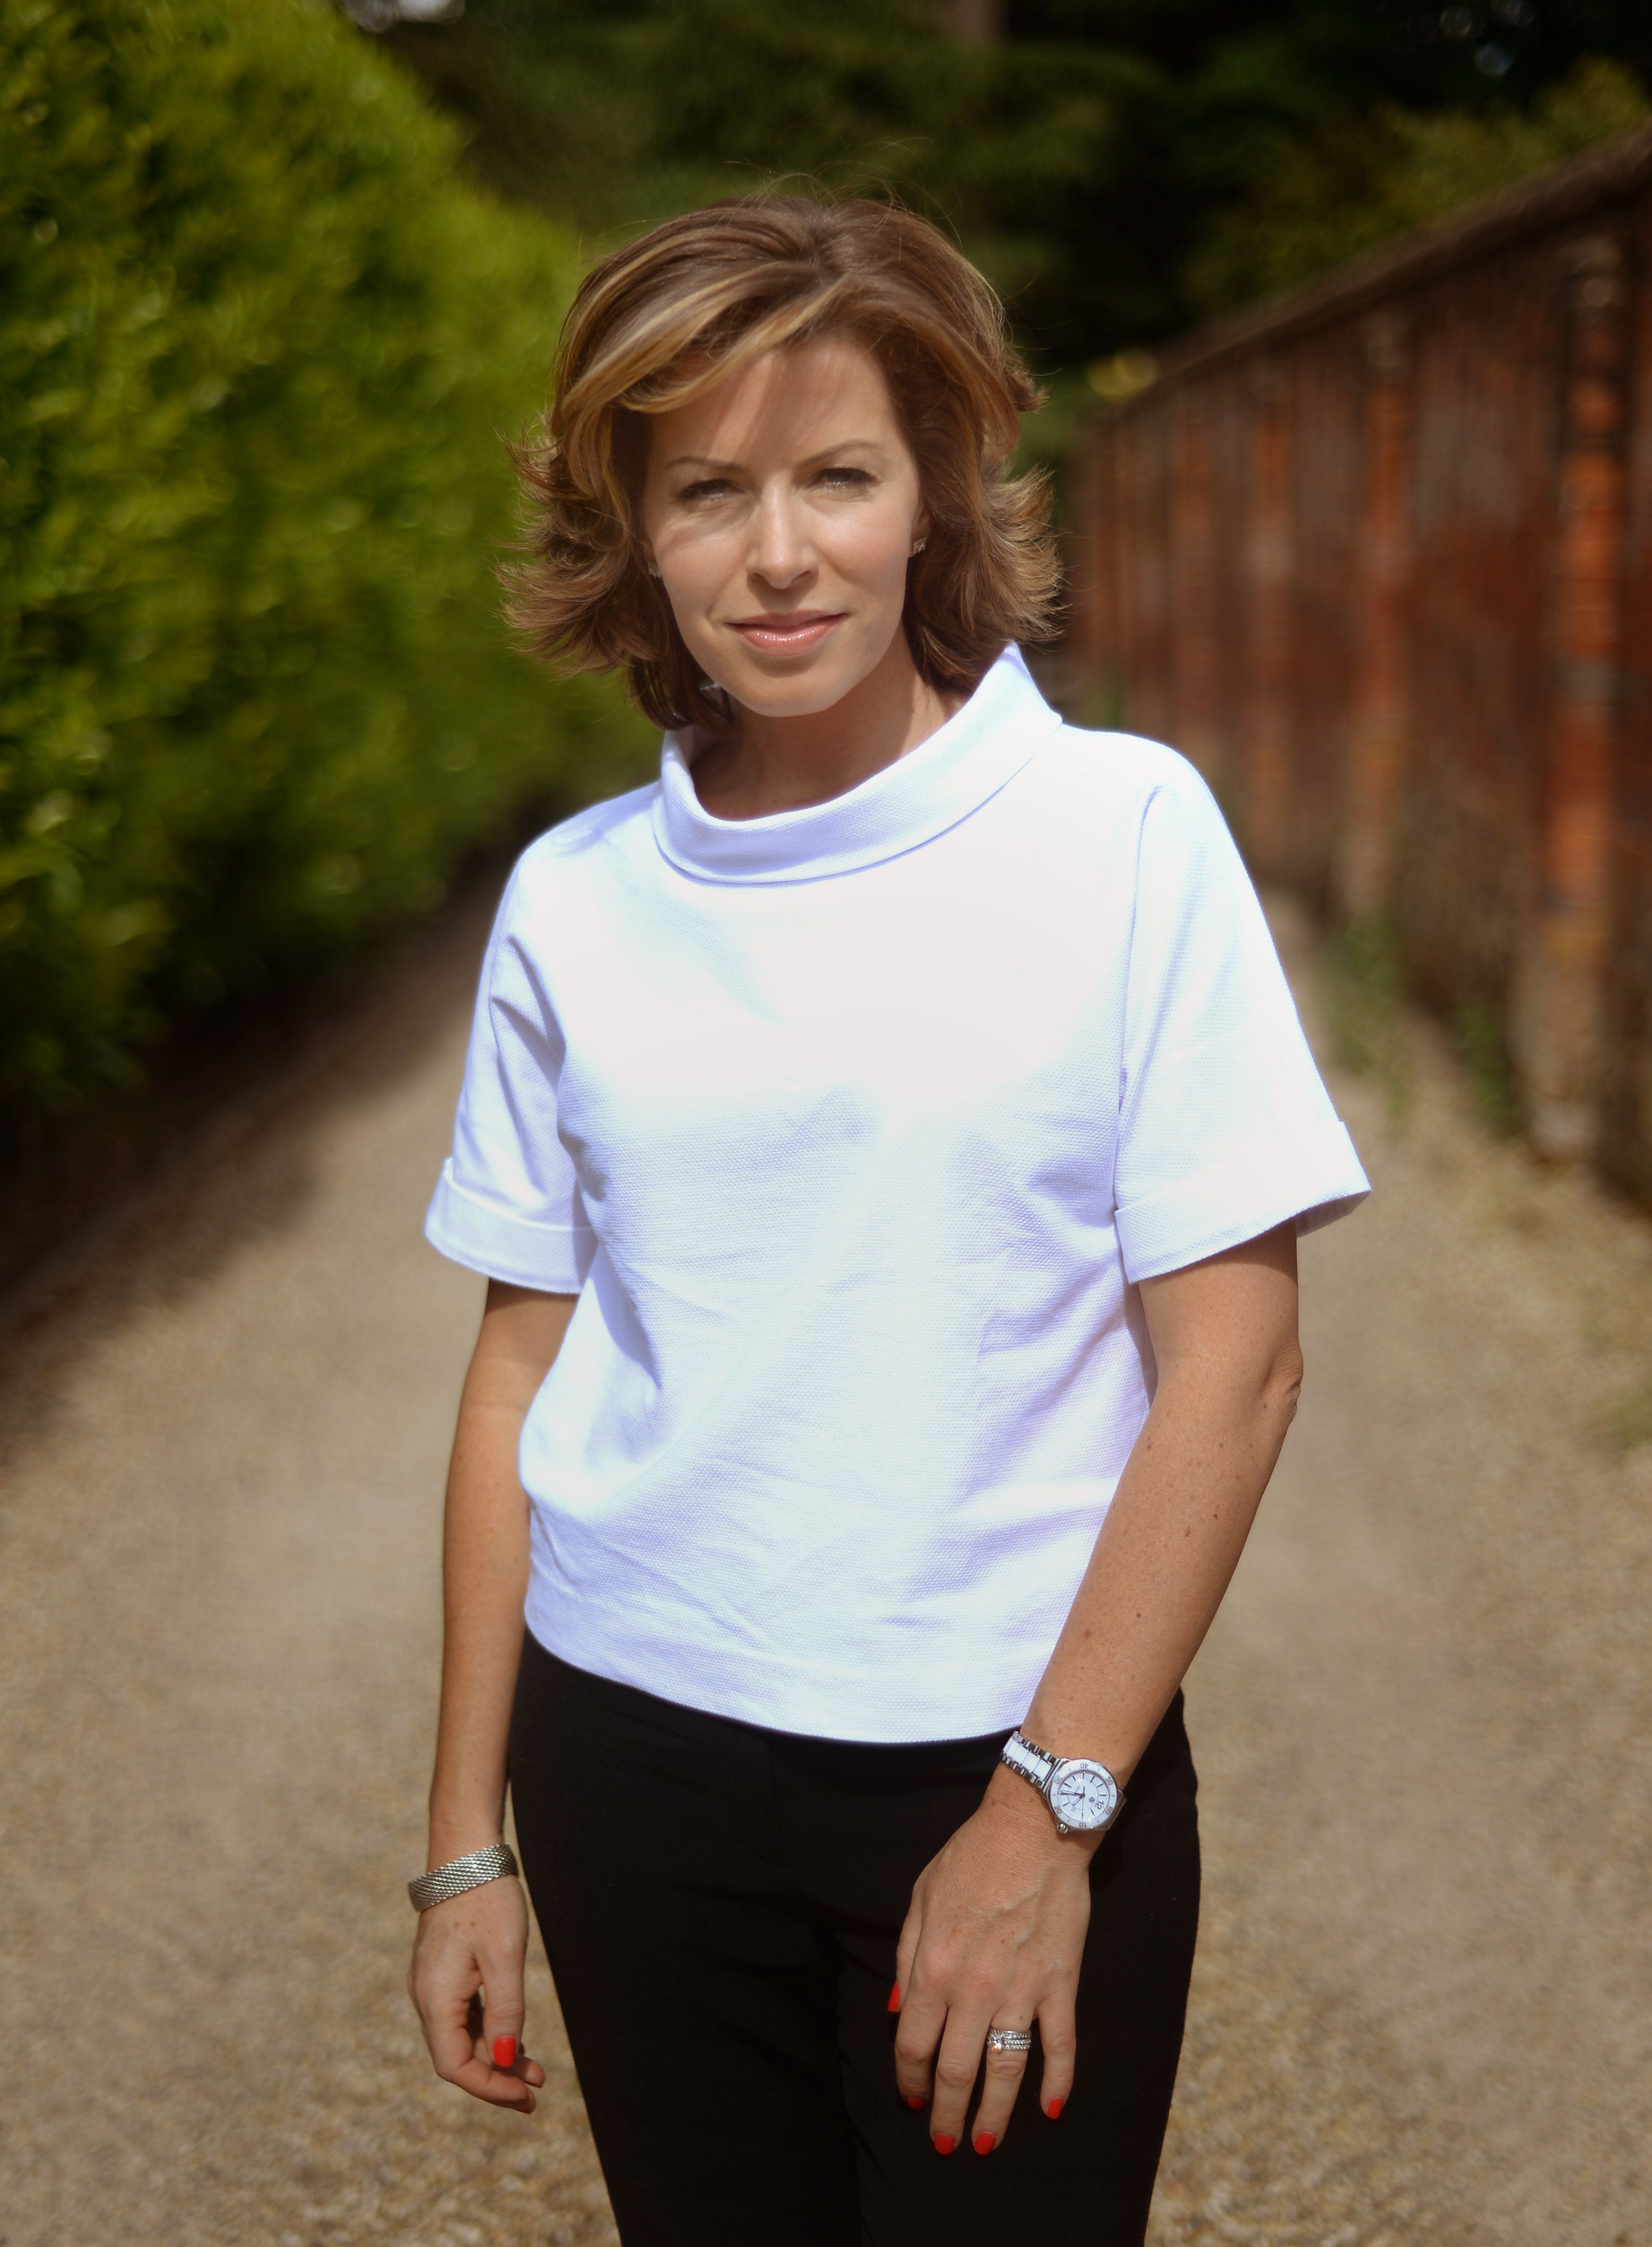 Natasha Kaplinsky And Eight-Year-Old Daughter Injured In Boat